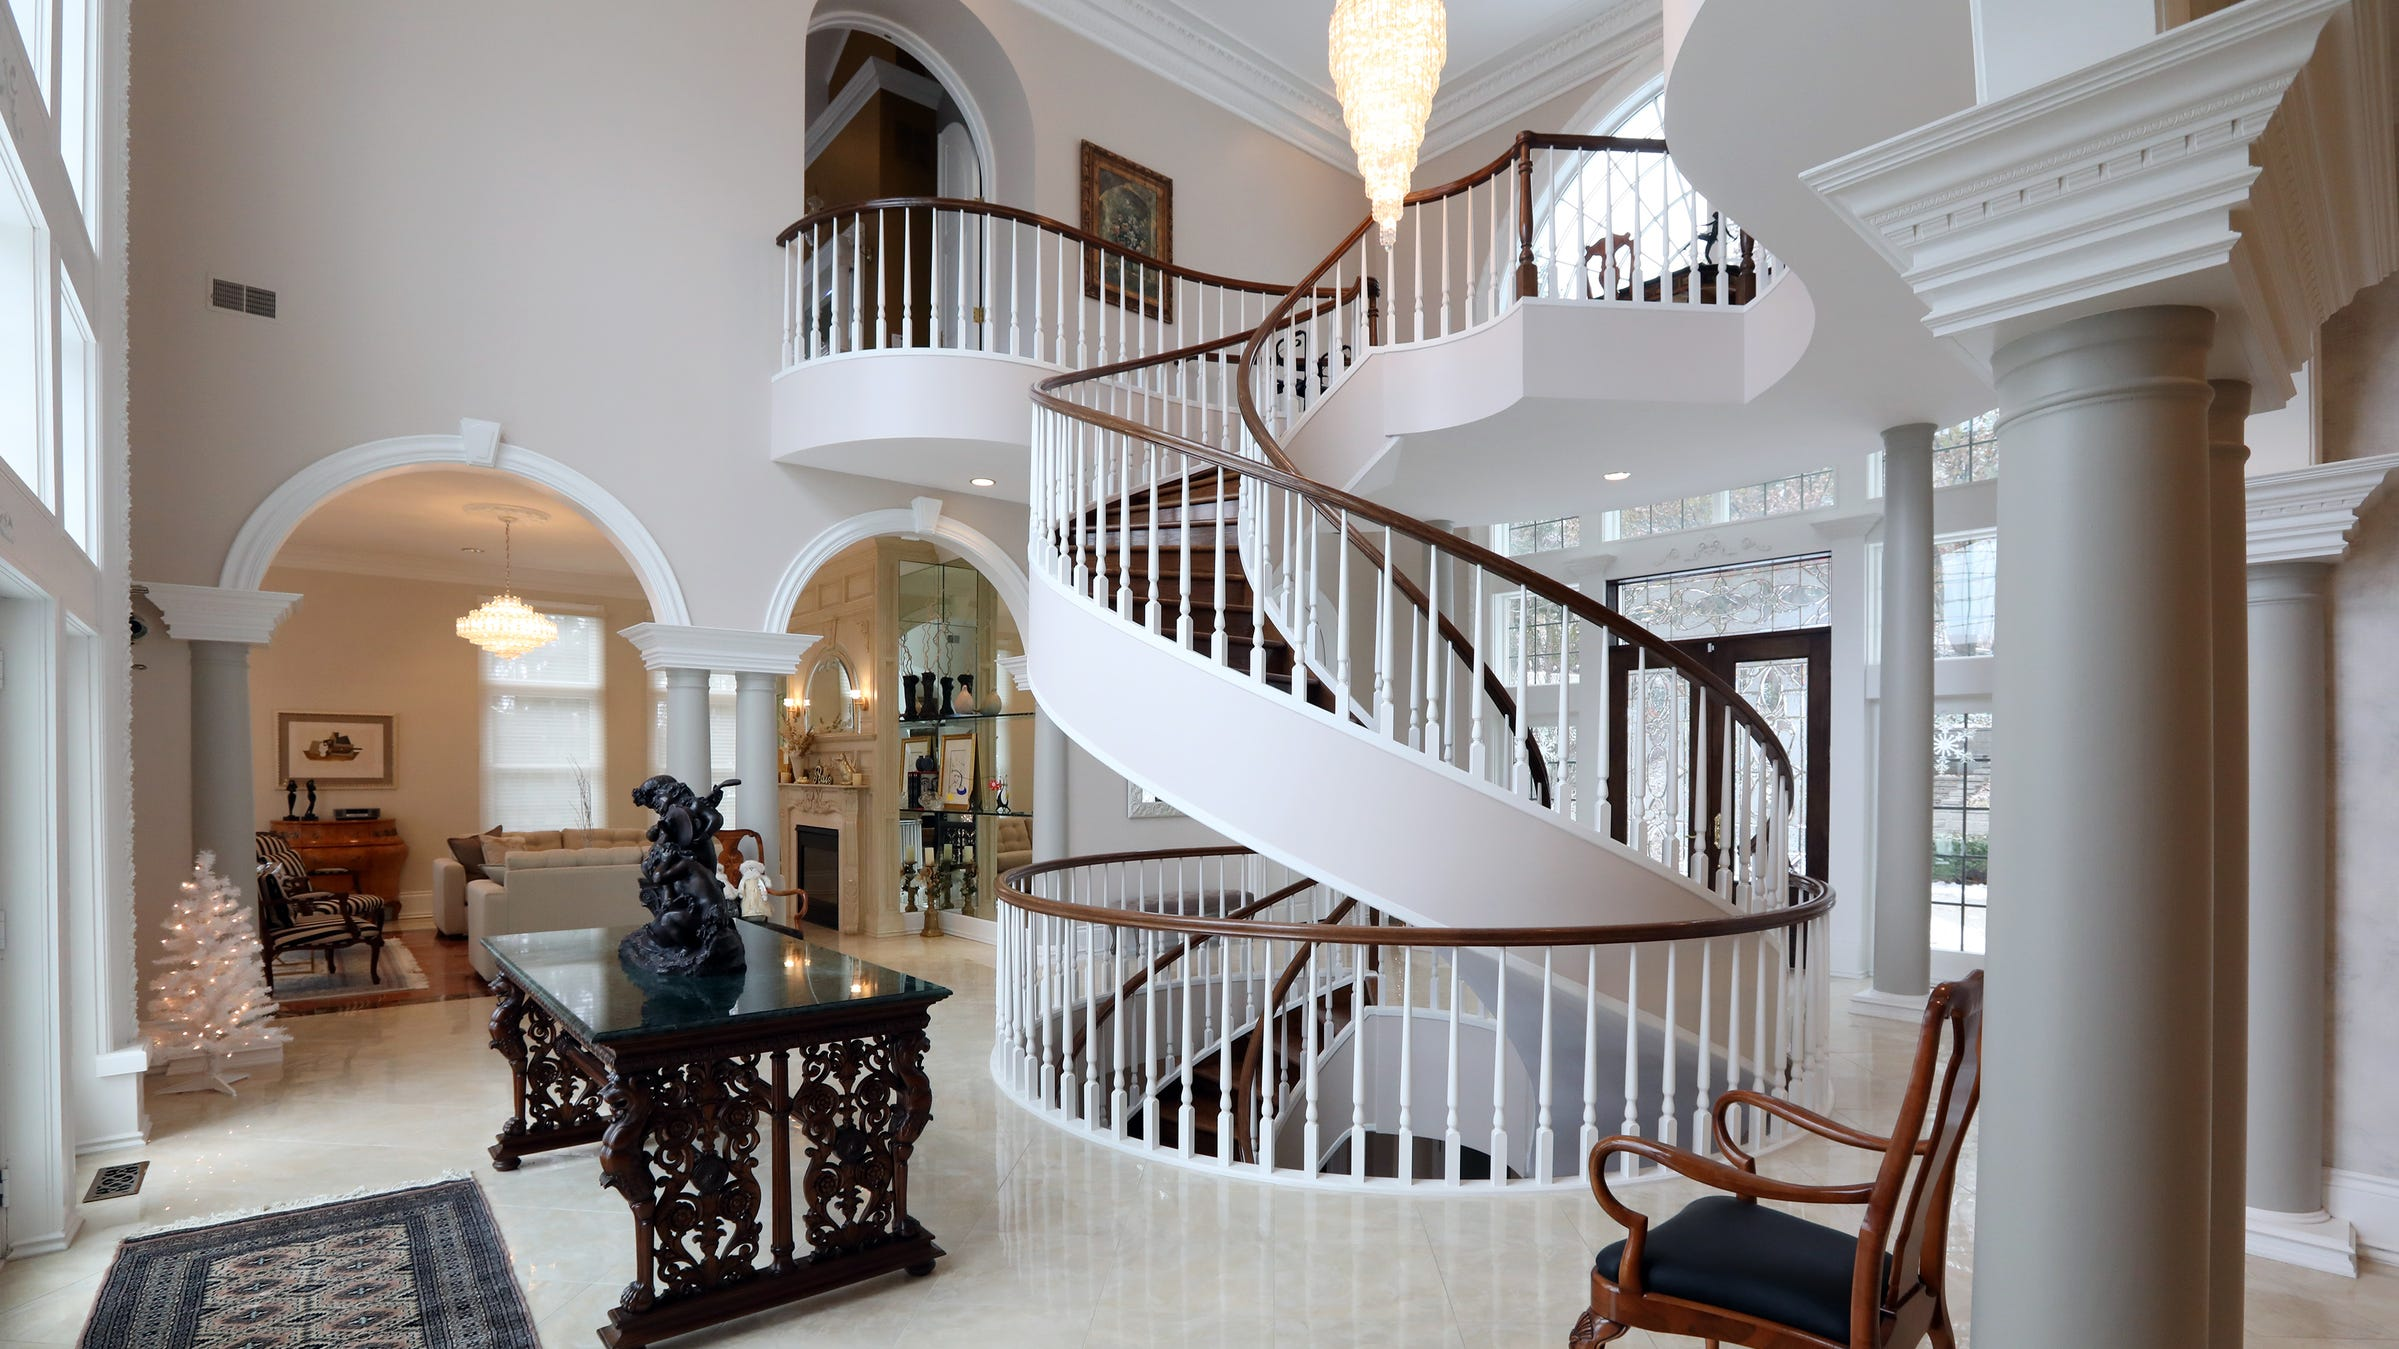 The elegant staircase is the focal point on three floors, from the curving second floor loft to the finely finished lower level in this house in Clarkston. Around it the floor plan is wide open.